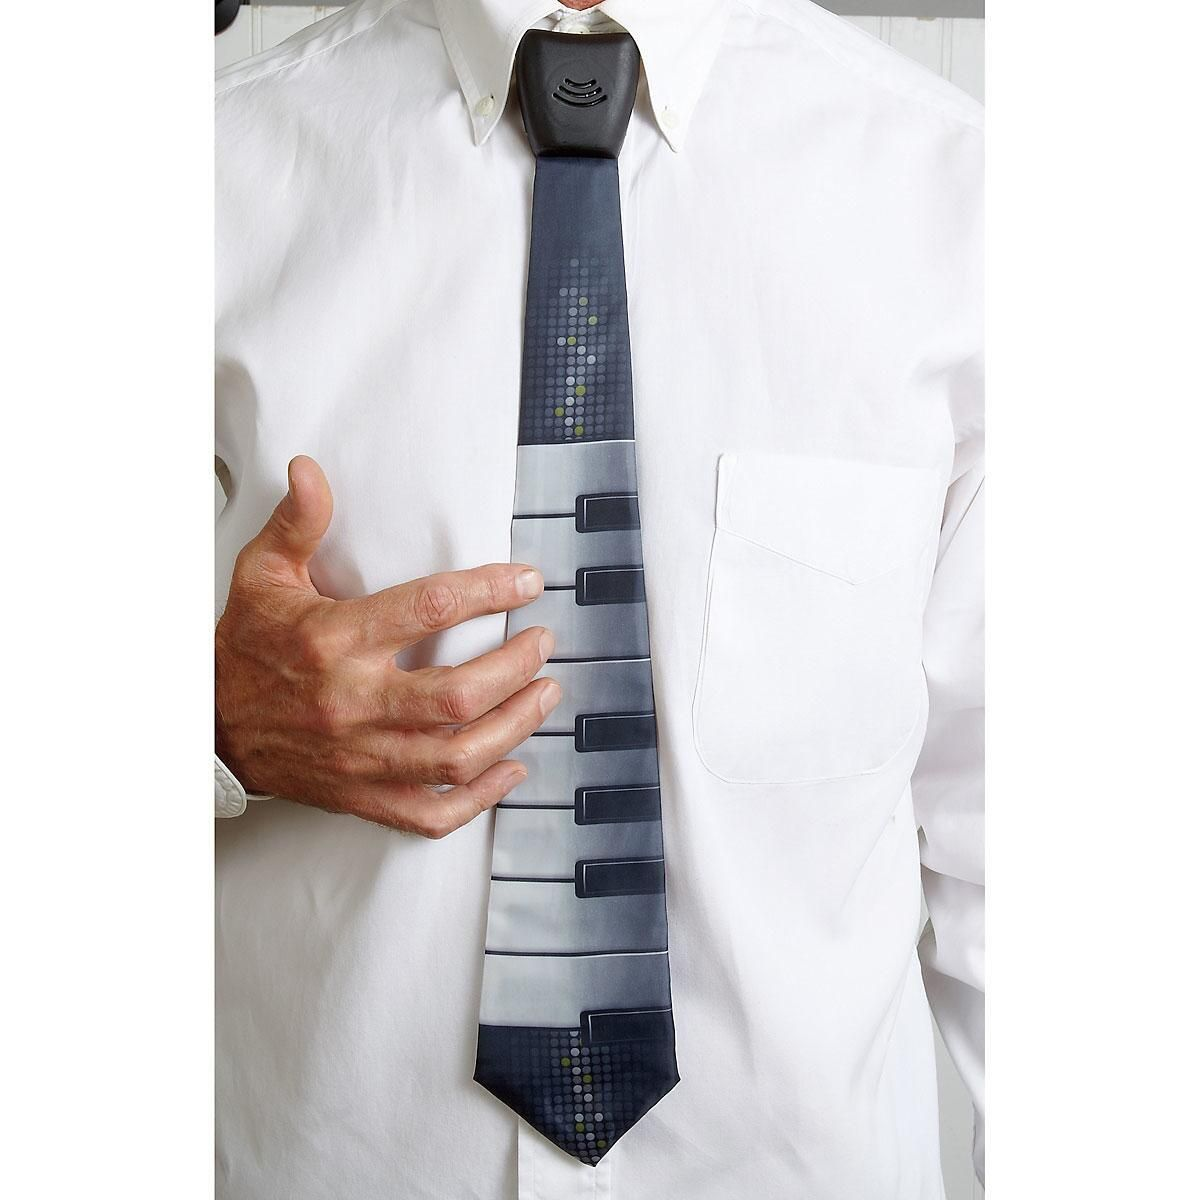 Musical Keyboard Necktie